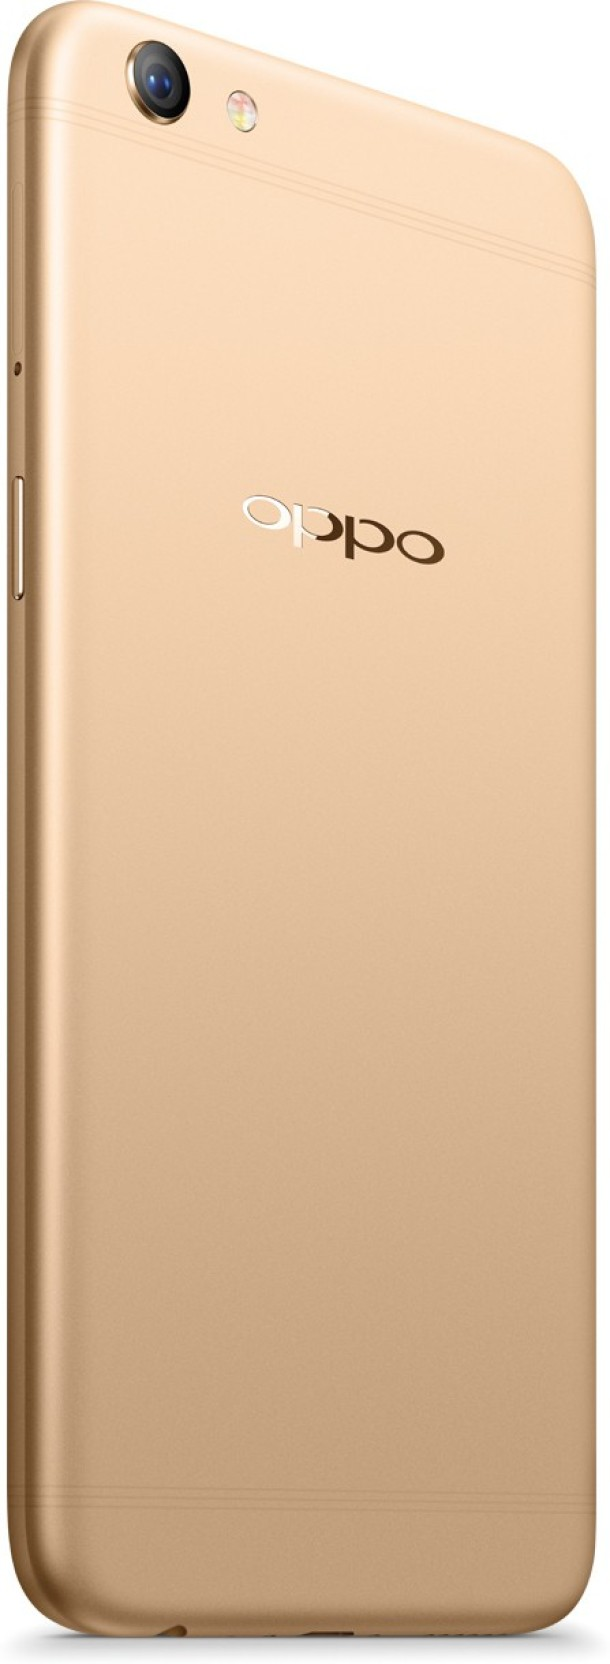 Oppo F3 Plus - images